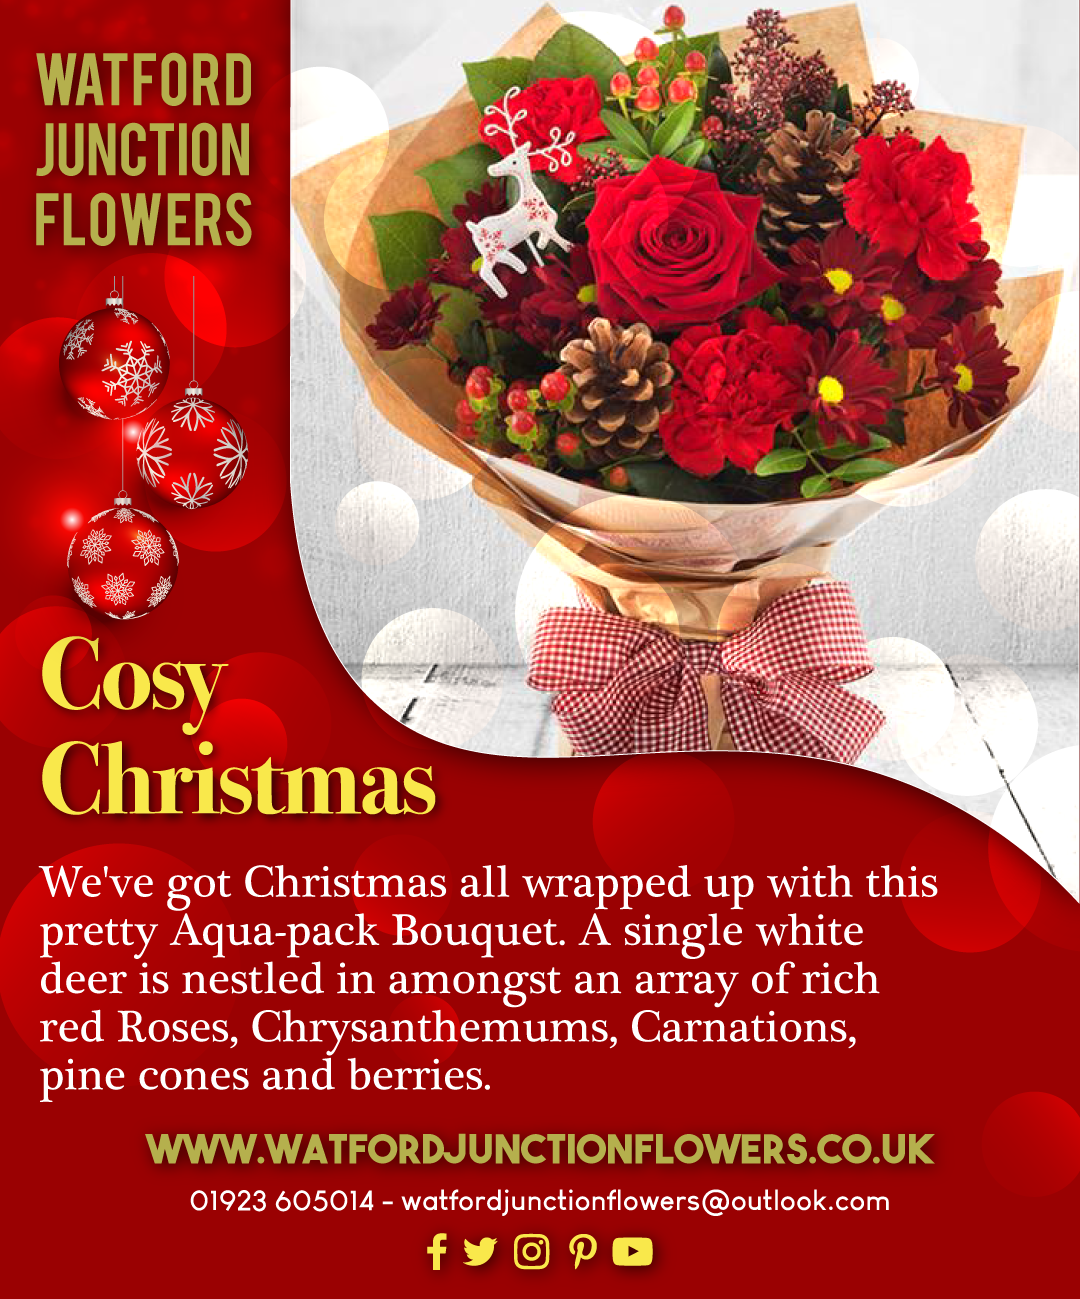 Cosy Christmas Flowers Bouquet Flowerbouquet Flowerpower Flowersfordays Loveforflowers Wedding Flowers Delivered Cosy Christmas Same Day Flower Delivery